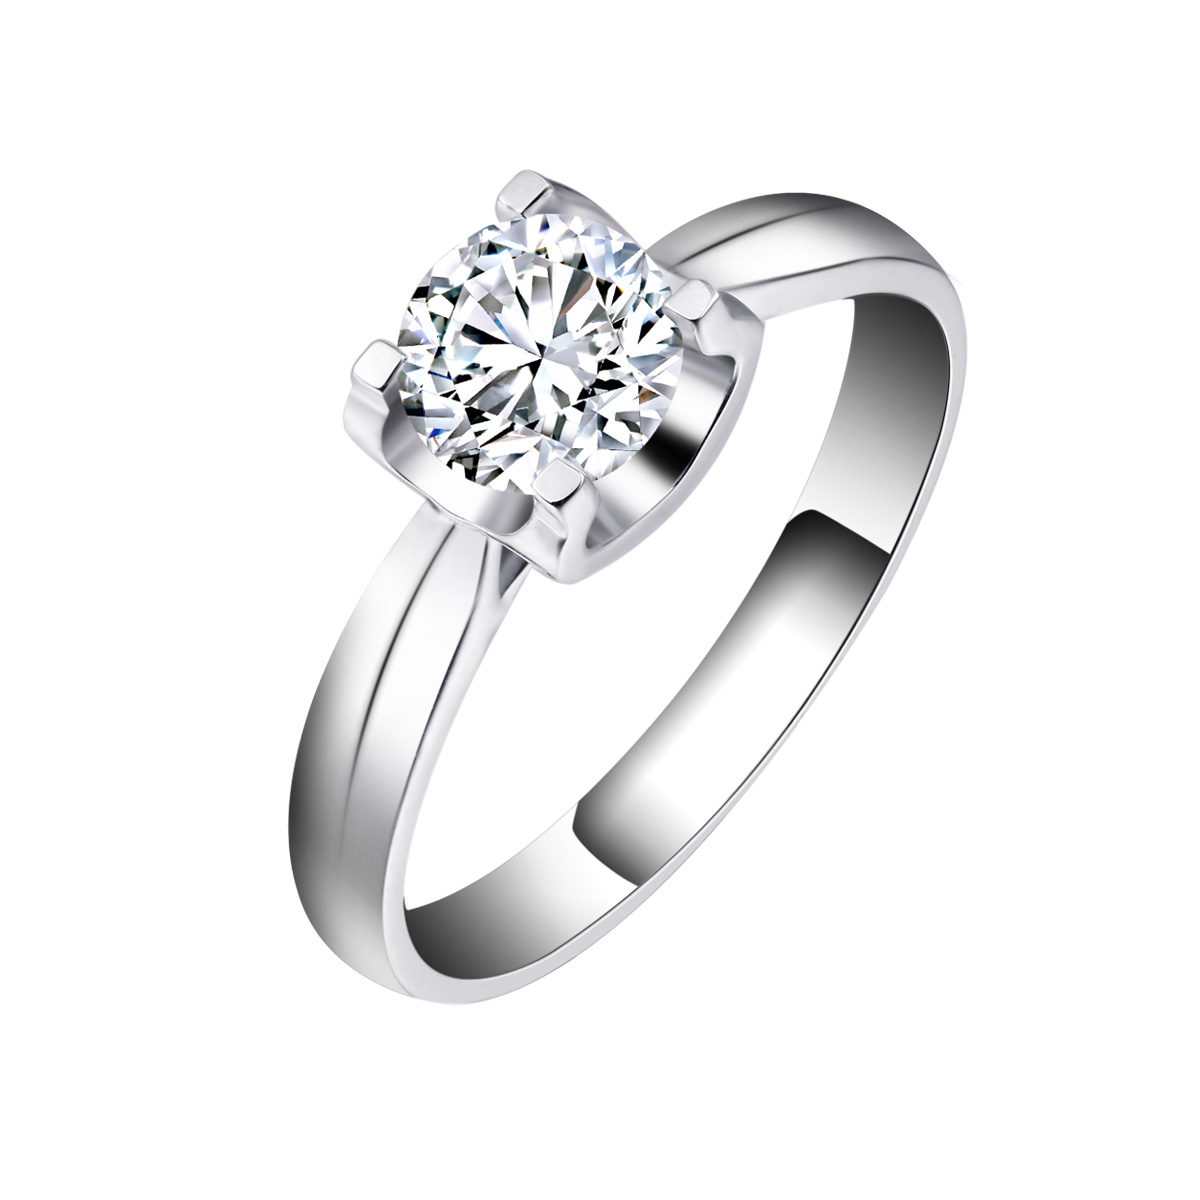 giant wedding ring Chrissy s simple well relatively wedding bands surround her huge cushion cut diamond